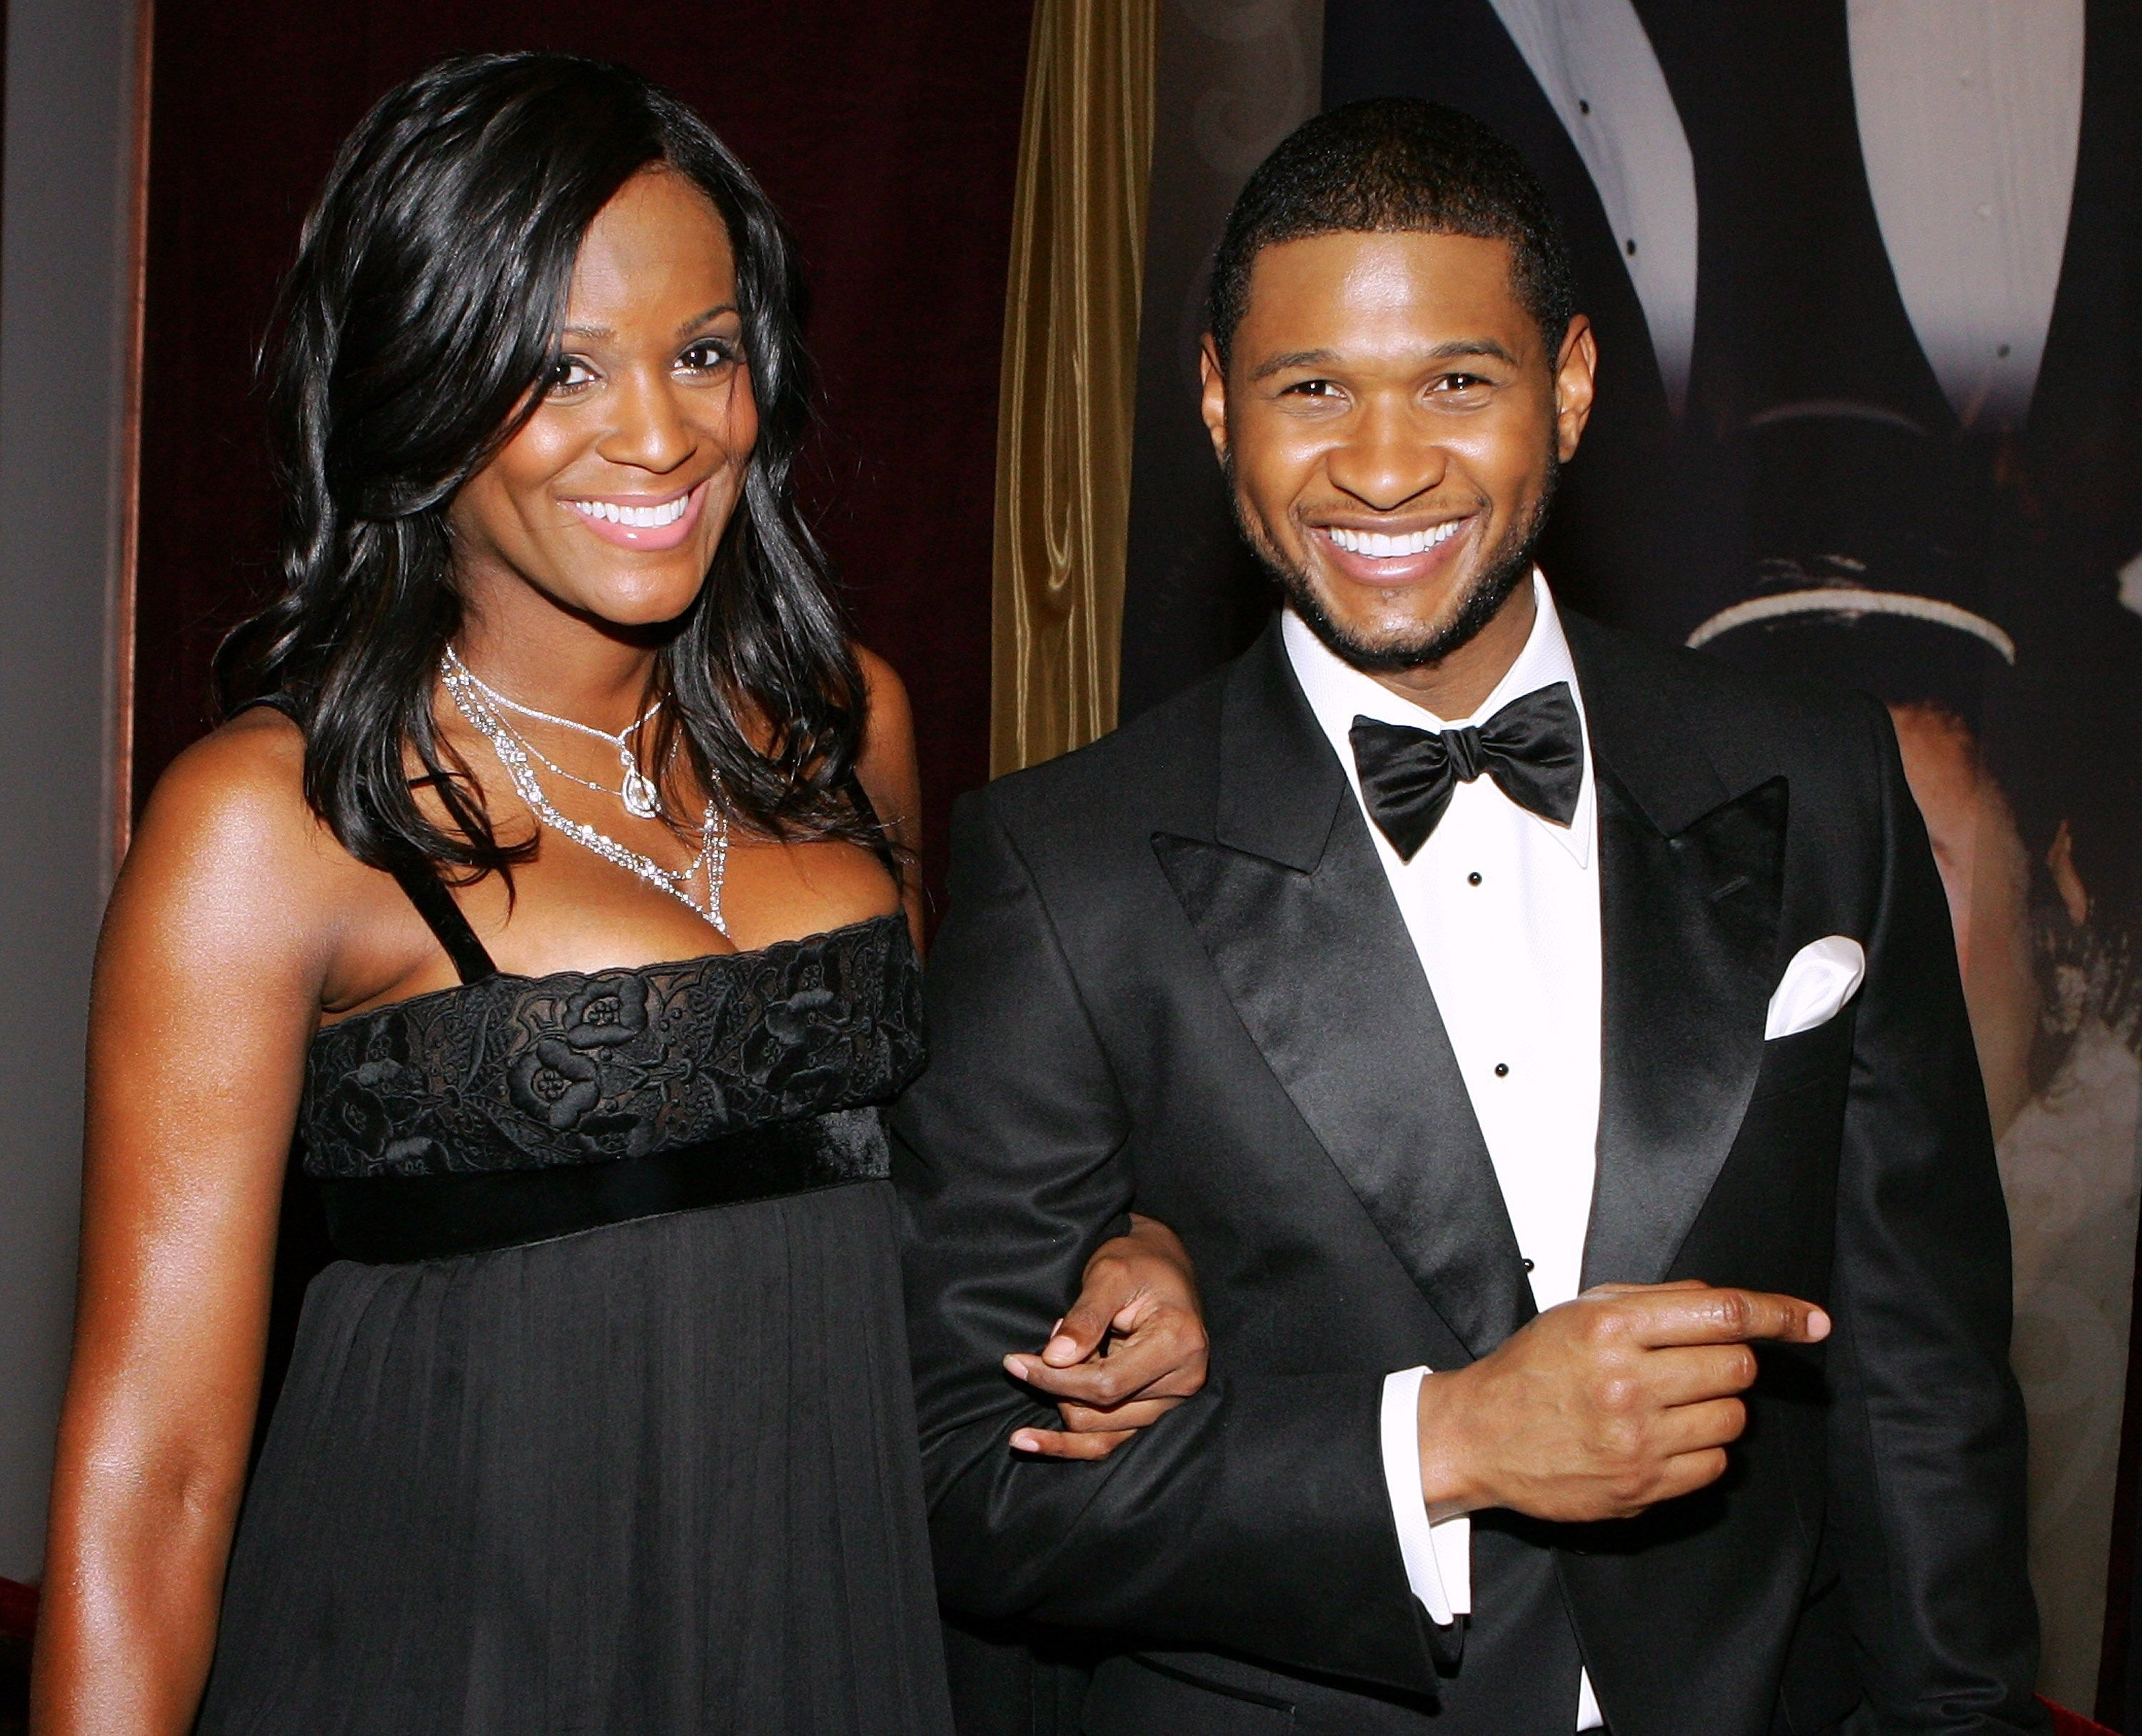 Discussion on this topic: Singer Ushers Son Nearly Drowns, Ex-Wife Seeks , singer-ushers-son-nearly-drowns-ex-wife-seeks/